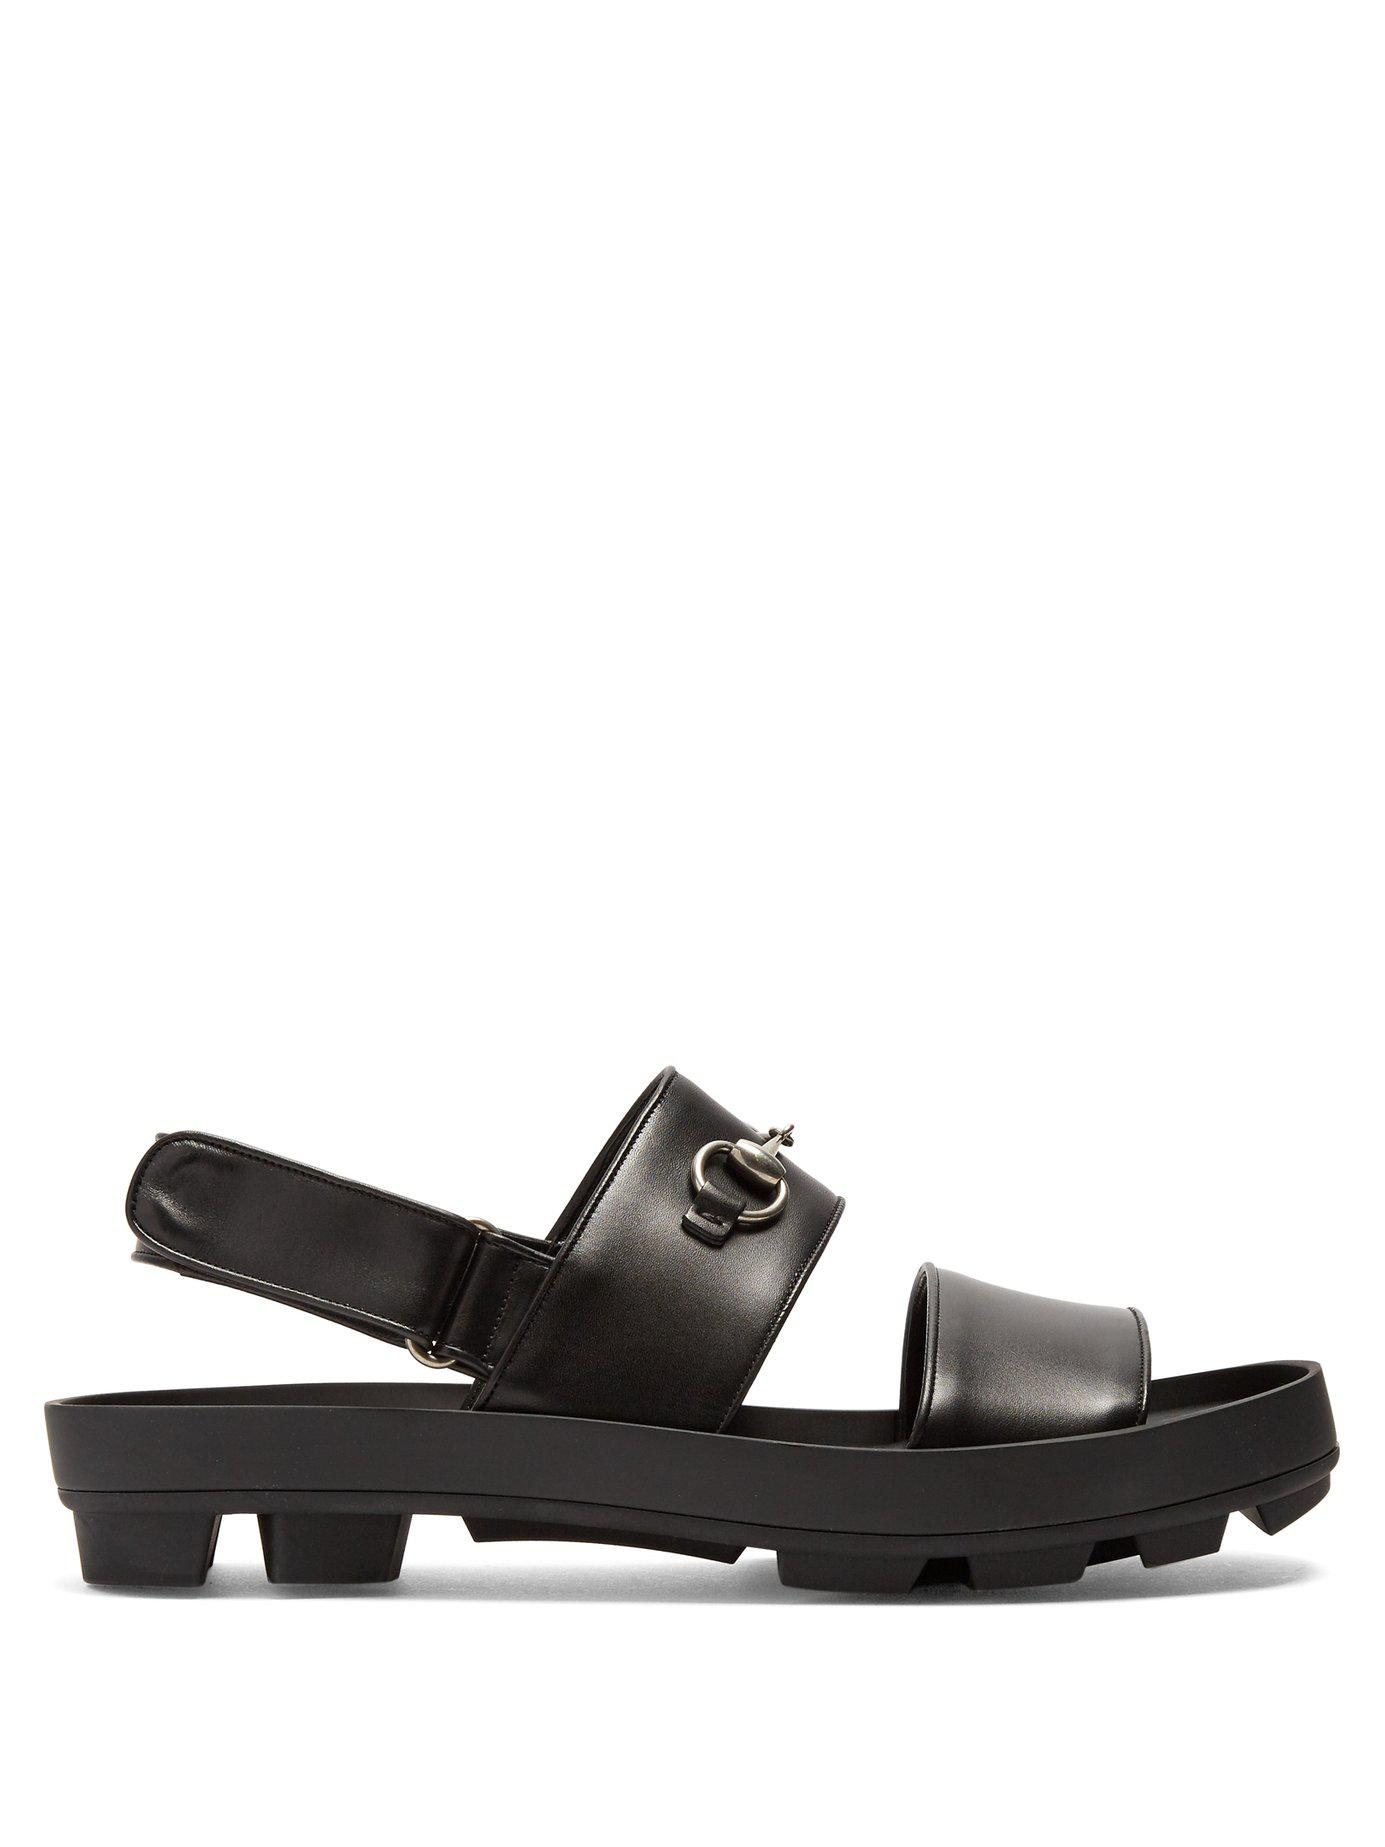 9a5c2e2429f Lyst - Gucci Sam Leather Sandals in Black for Men